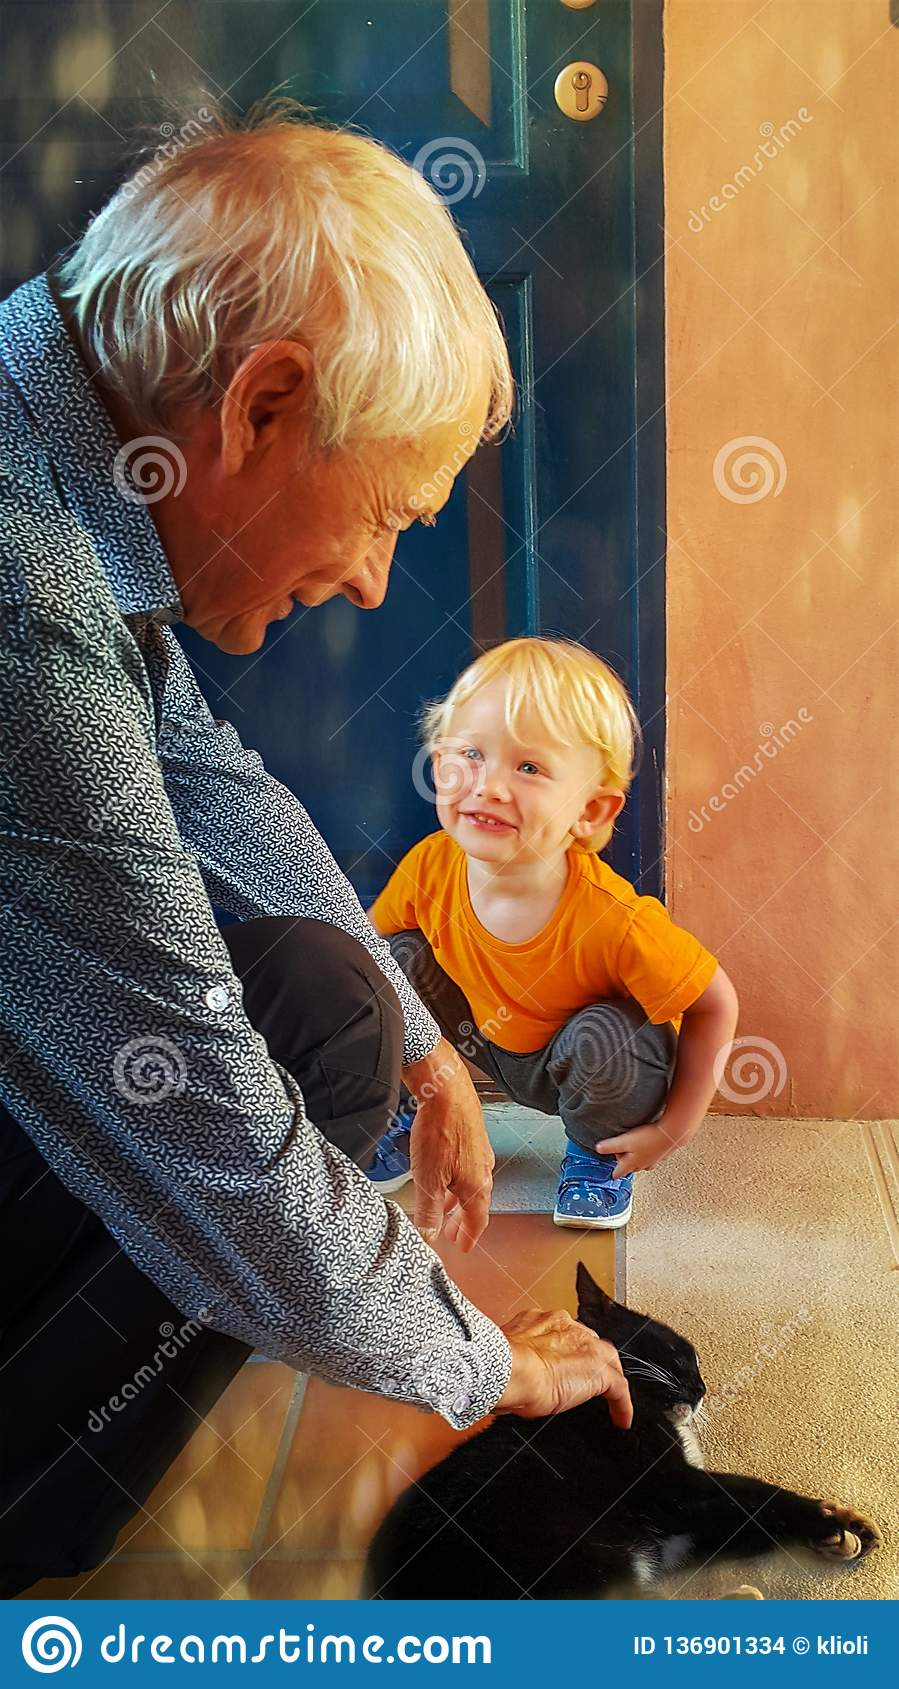 The little two-year-old boy happily smiles and looks at his grandfather with adoration, who strokes a cat